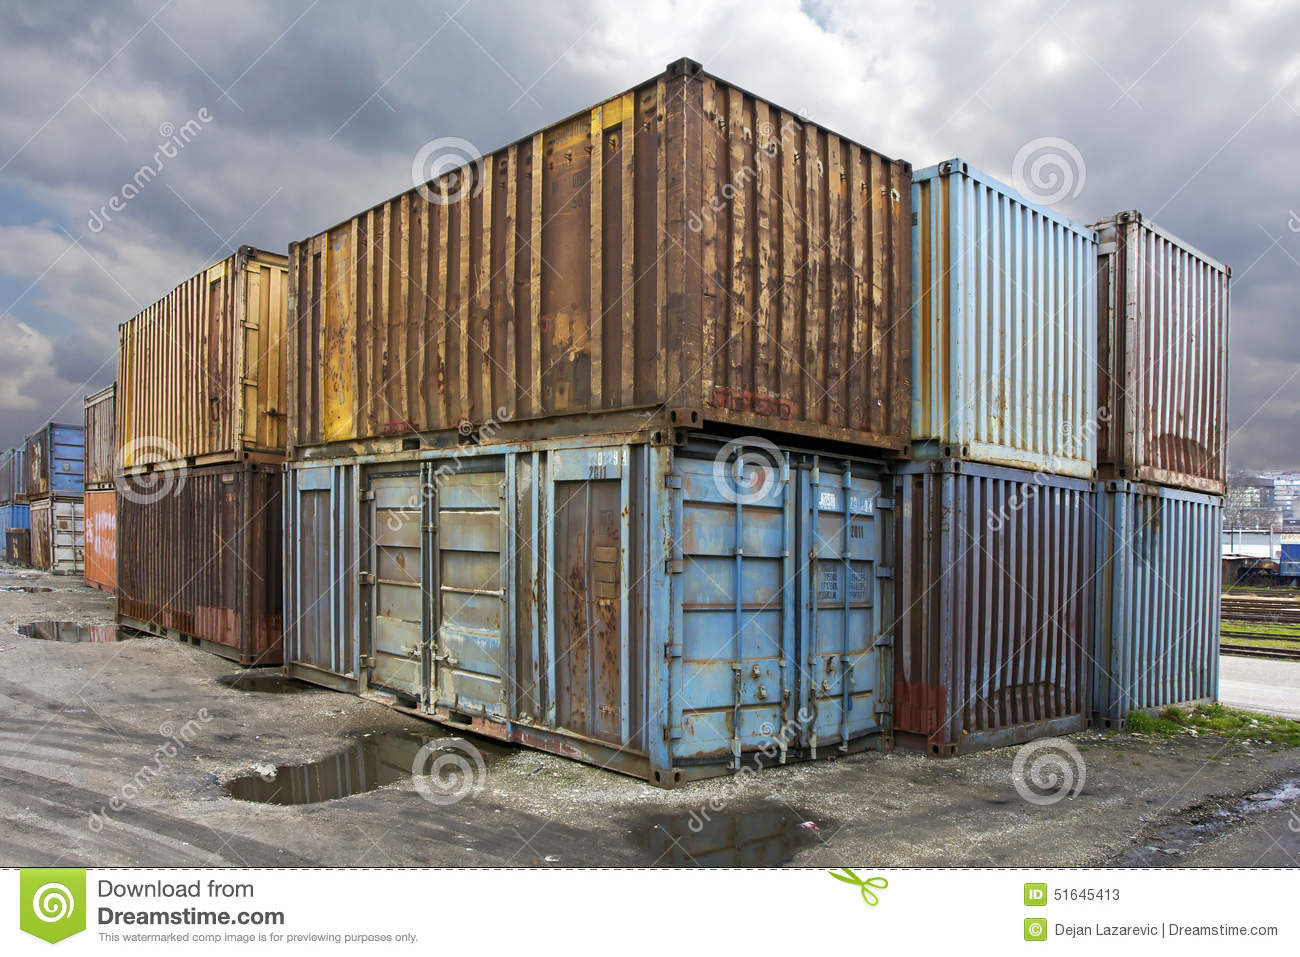 http://thumbs.dreamstime.com/z/oude-containers-51645413.jpg